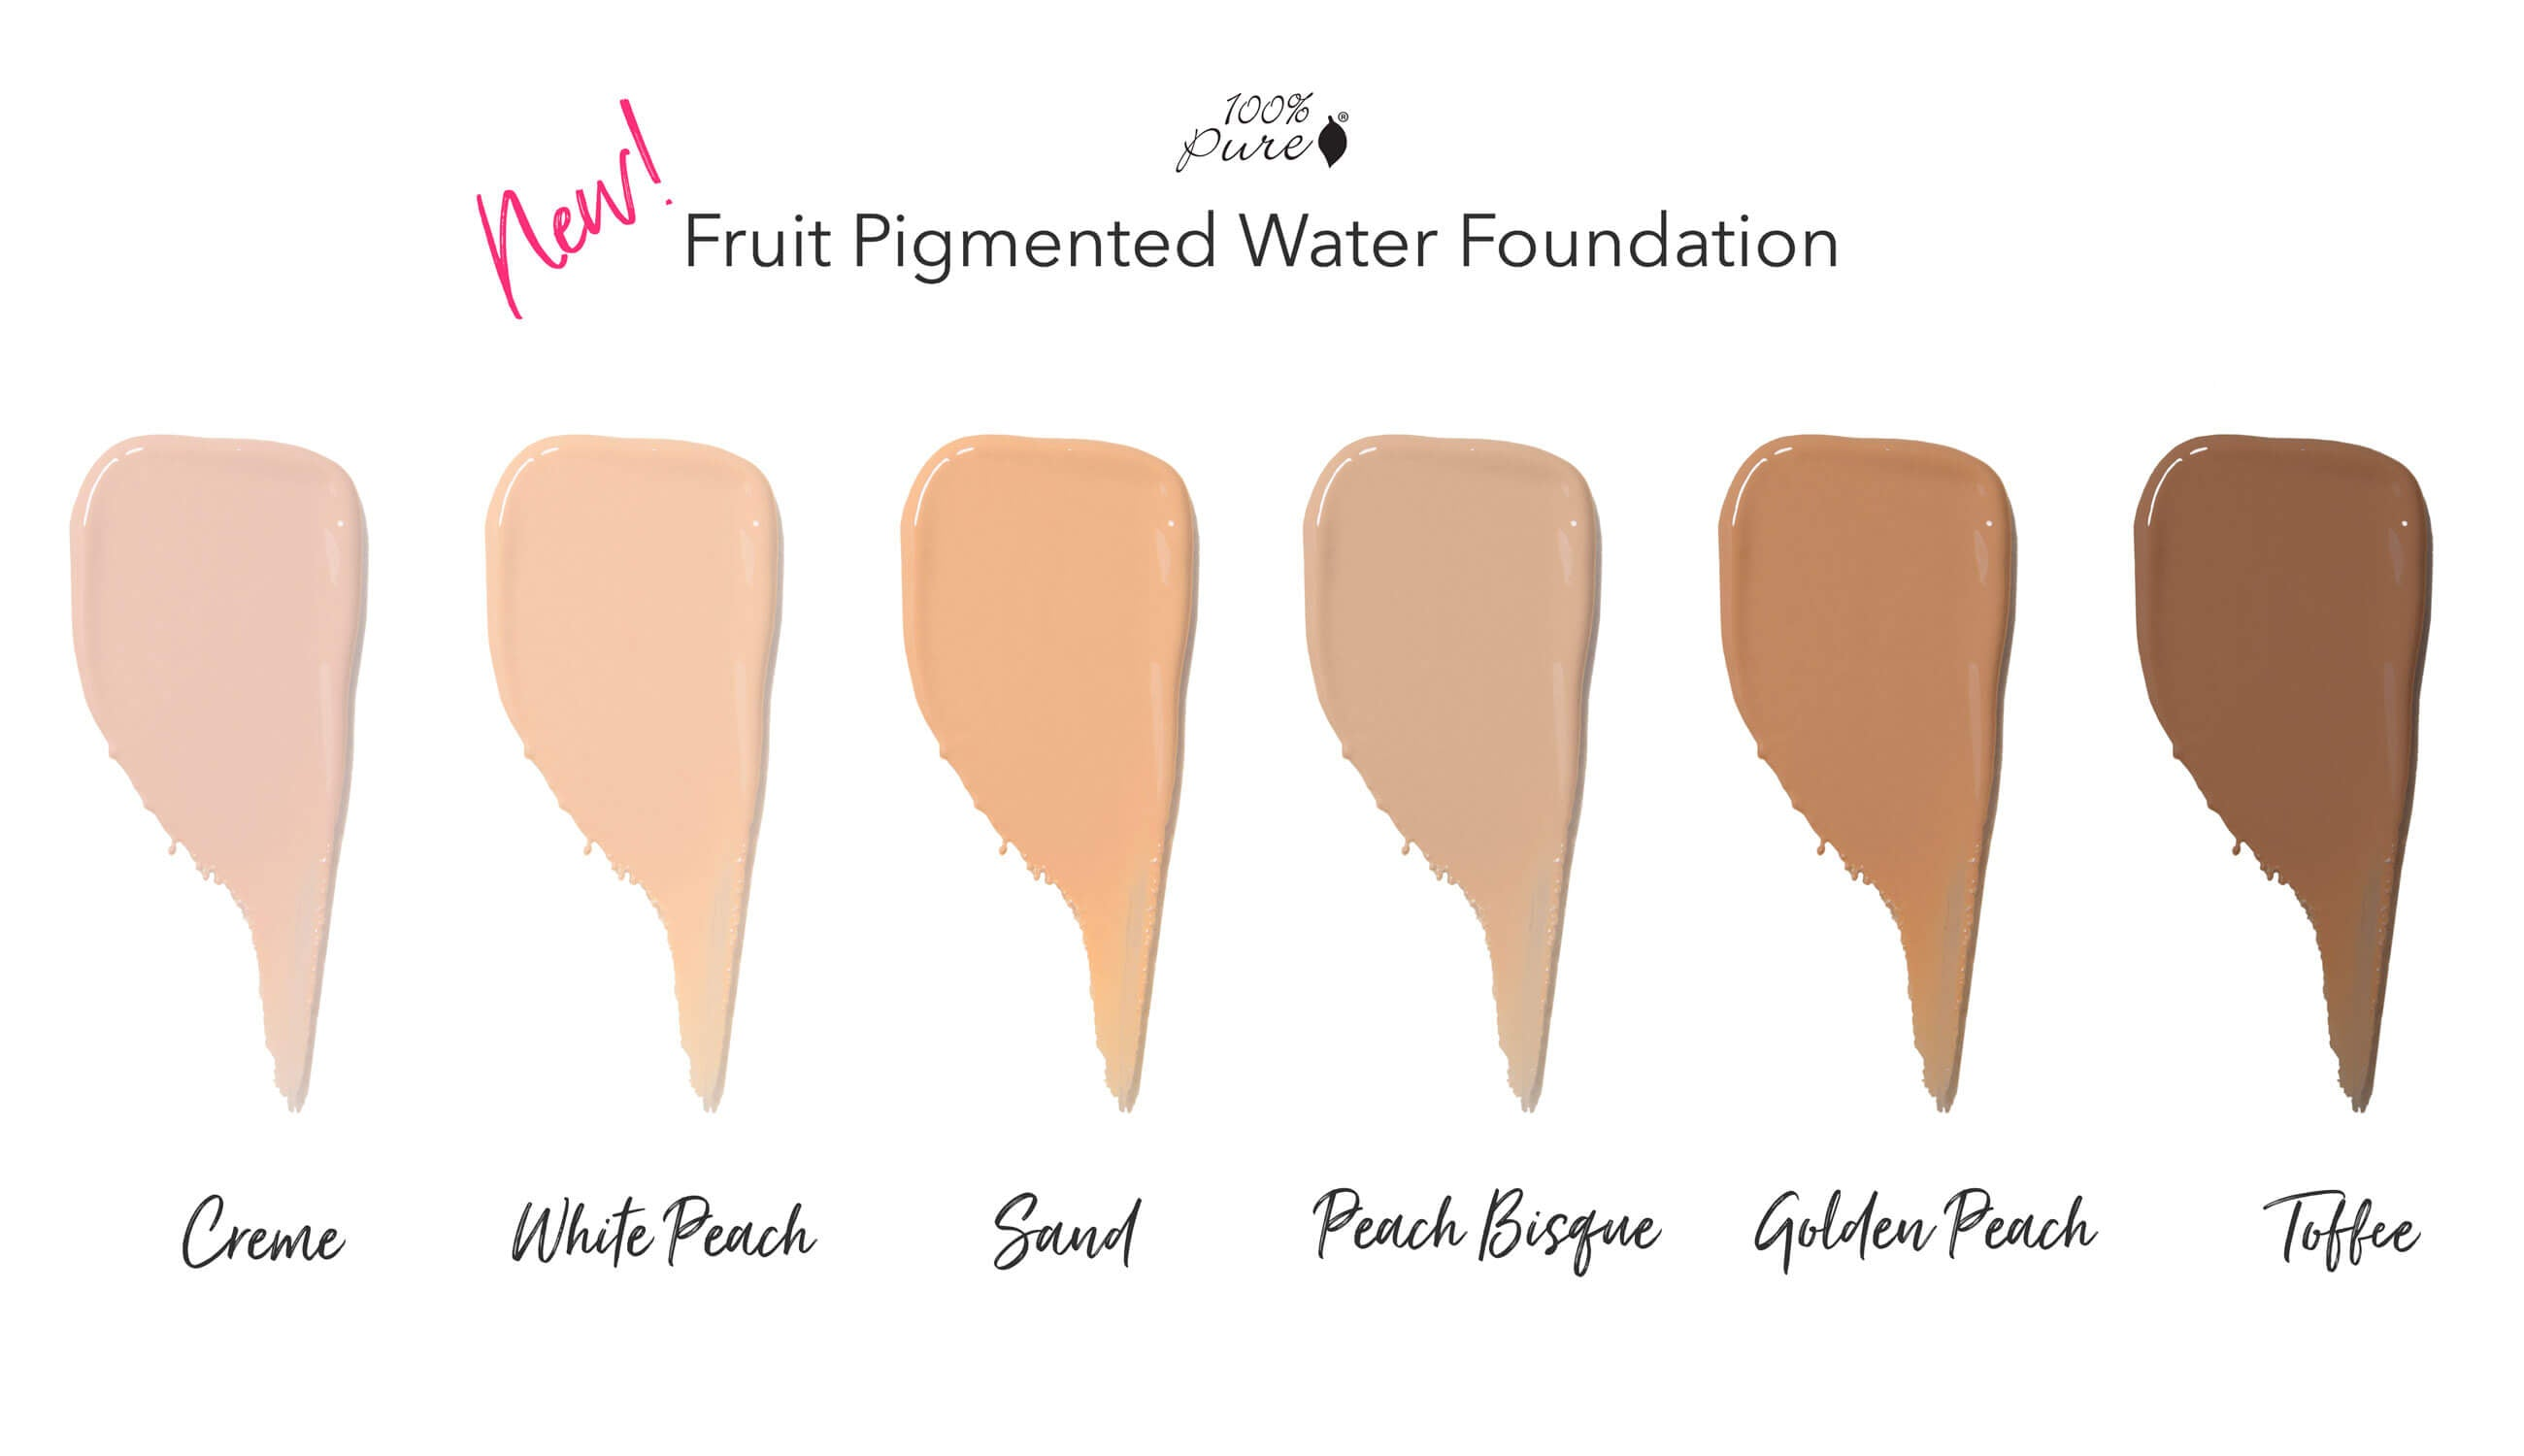 new water foundation swatch charts